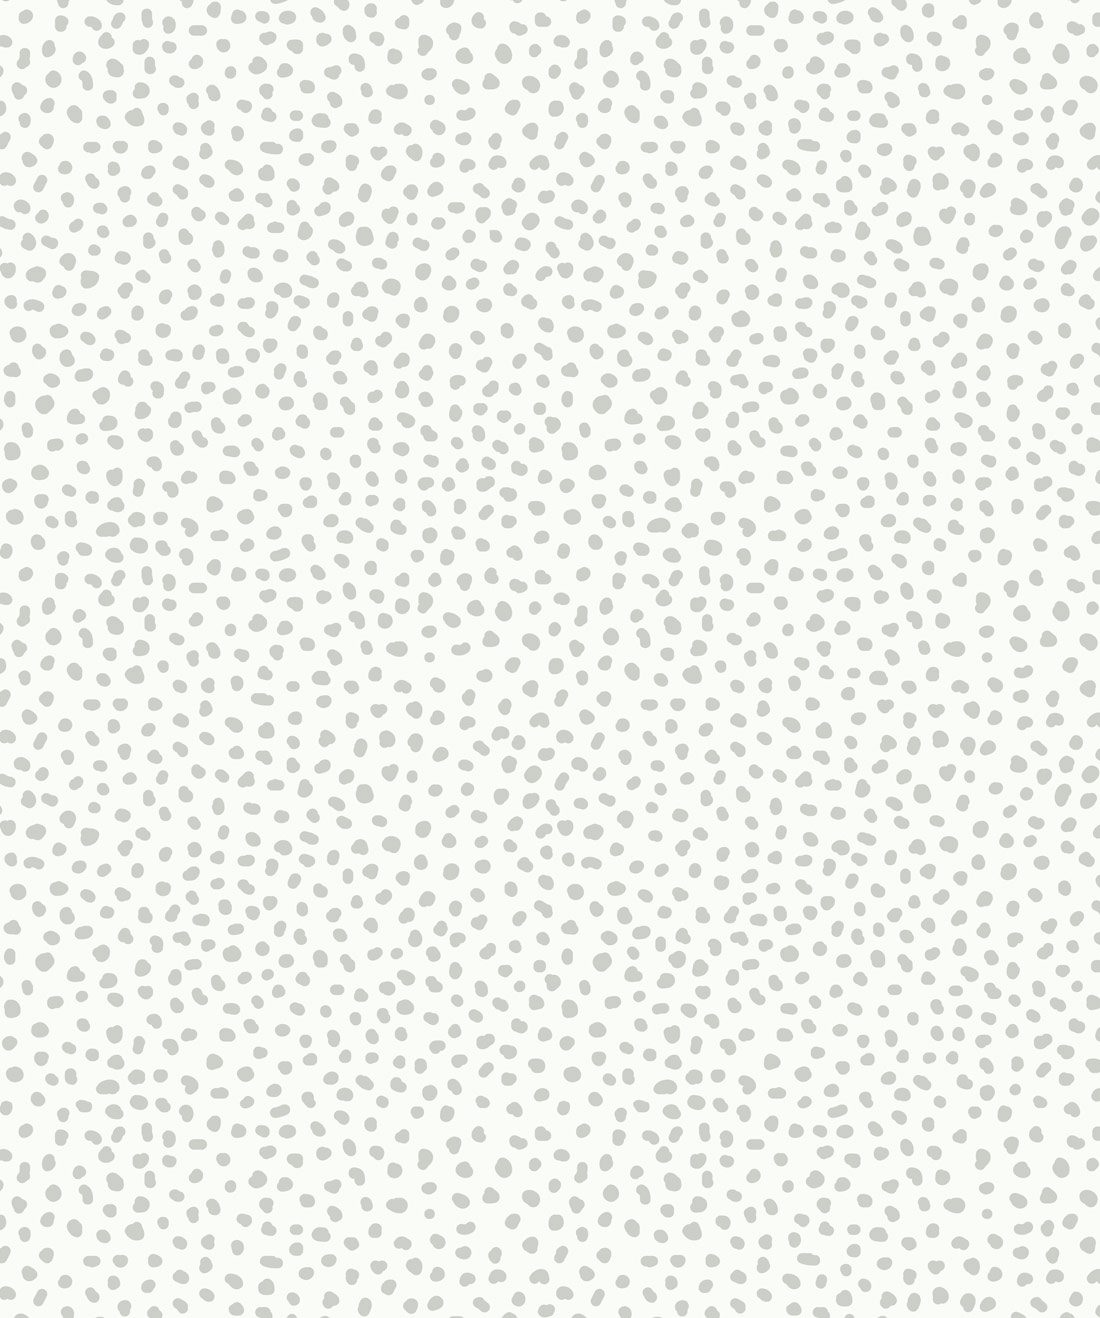 Huddy's Dots Grey